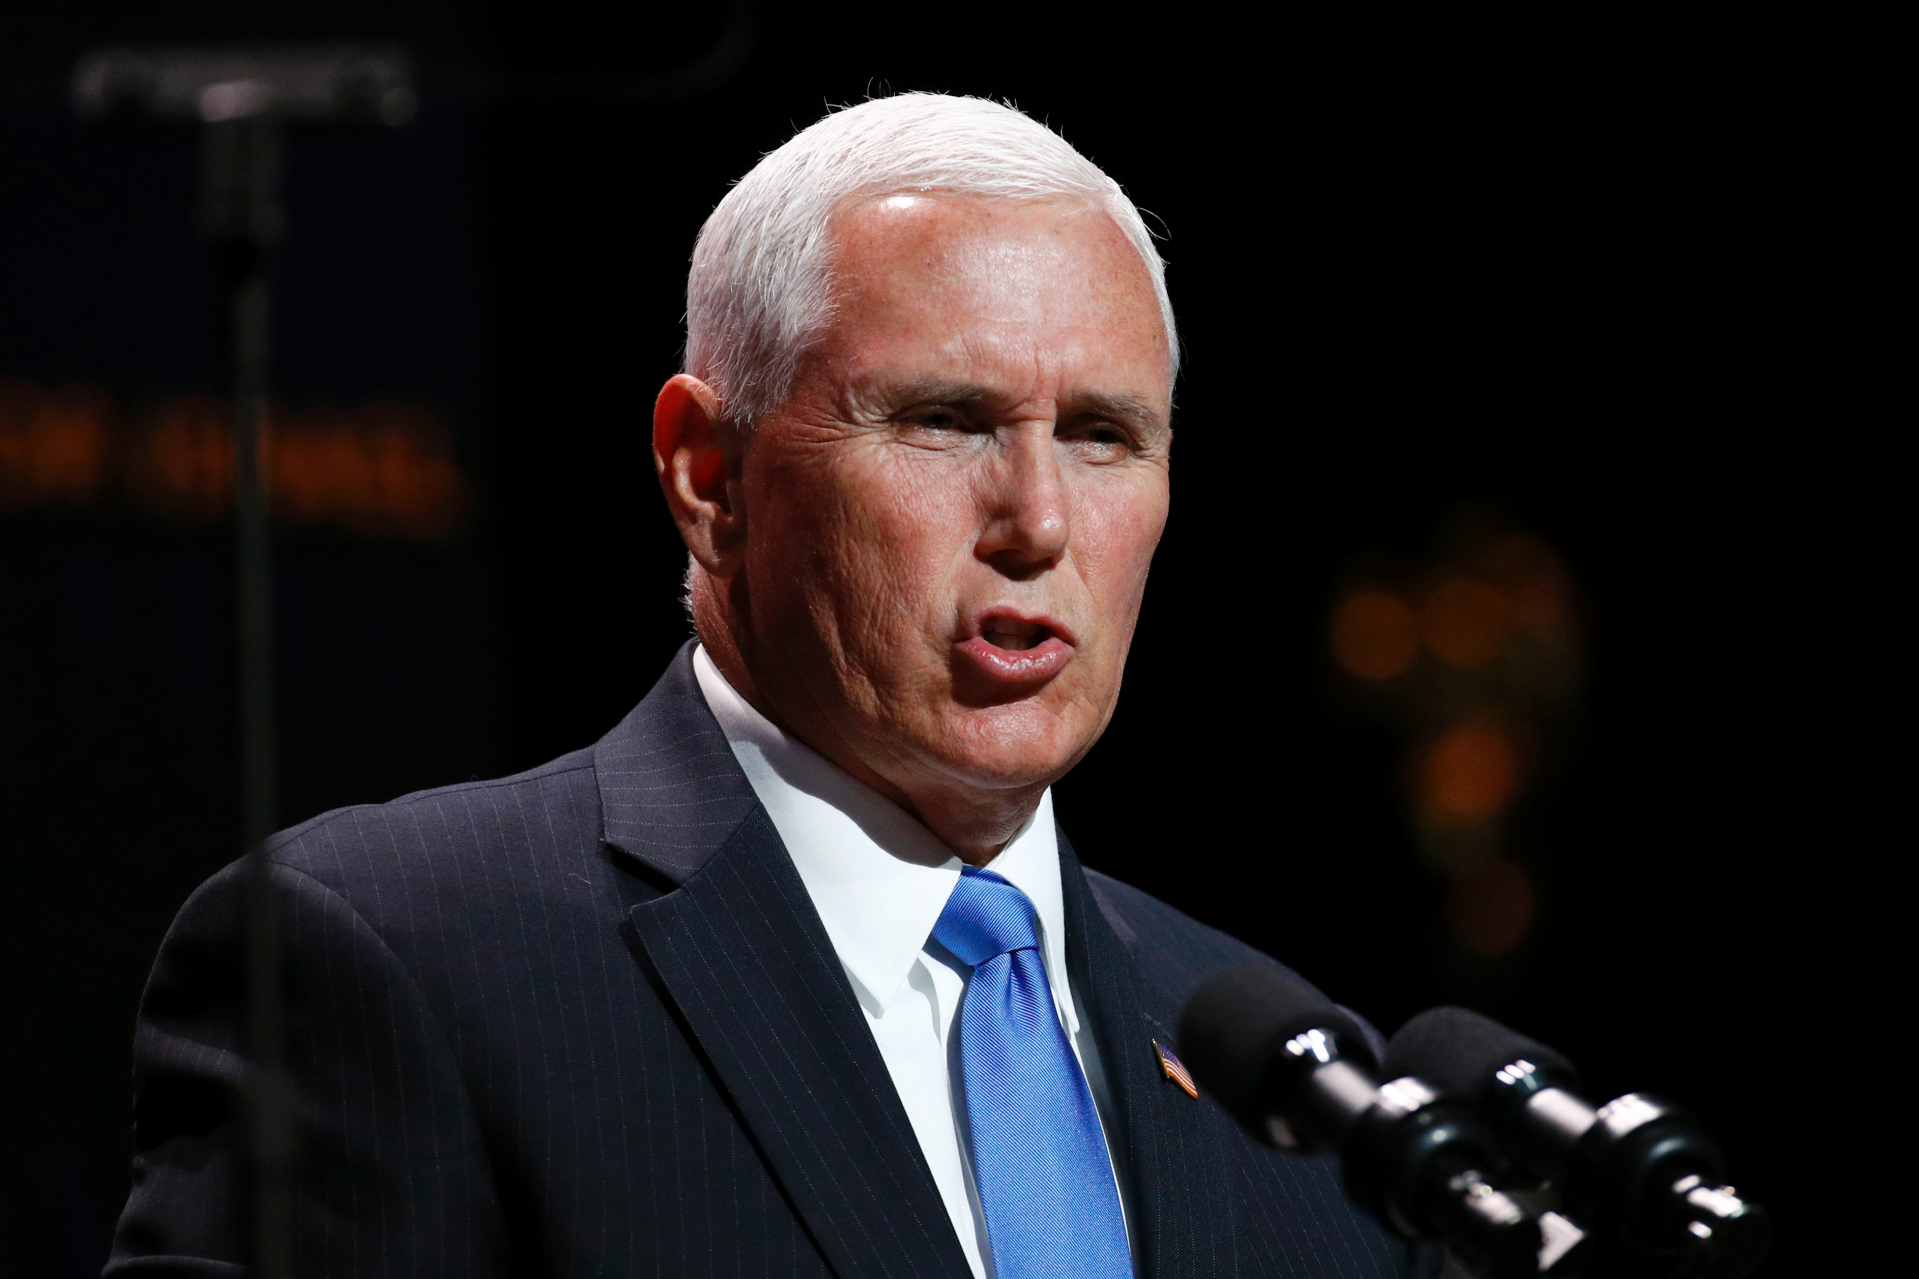 Westlake Legal Group ContentBroker_contentid-932c1a9b29294b81b3ab20085ed6d1ce Pence slams CNN for 'dishonest' coverage of detention center visit; says America 'deserves the full story' Joseph Wulfsohn fox-news/us/us-regions/southwest/texas fox-news/us/immigration fox-news/topic/fox-news-flash fox-news/tech/companies/twitter fox-news/person/mike-pence fox-news/entertainment/media fox news fnc/politics fnc article 083904f0-5c35-5b01-831f-13ec73736682